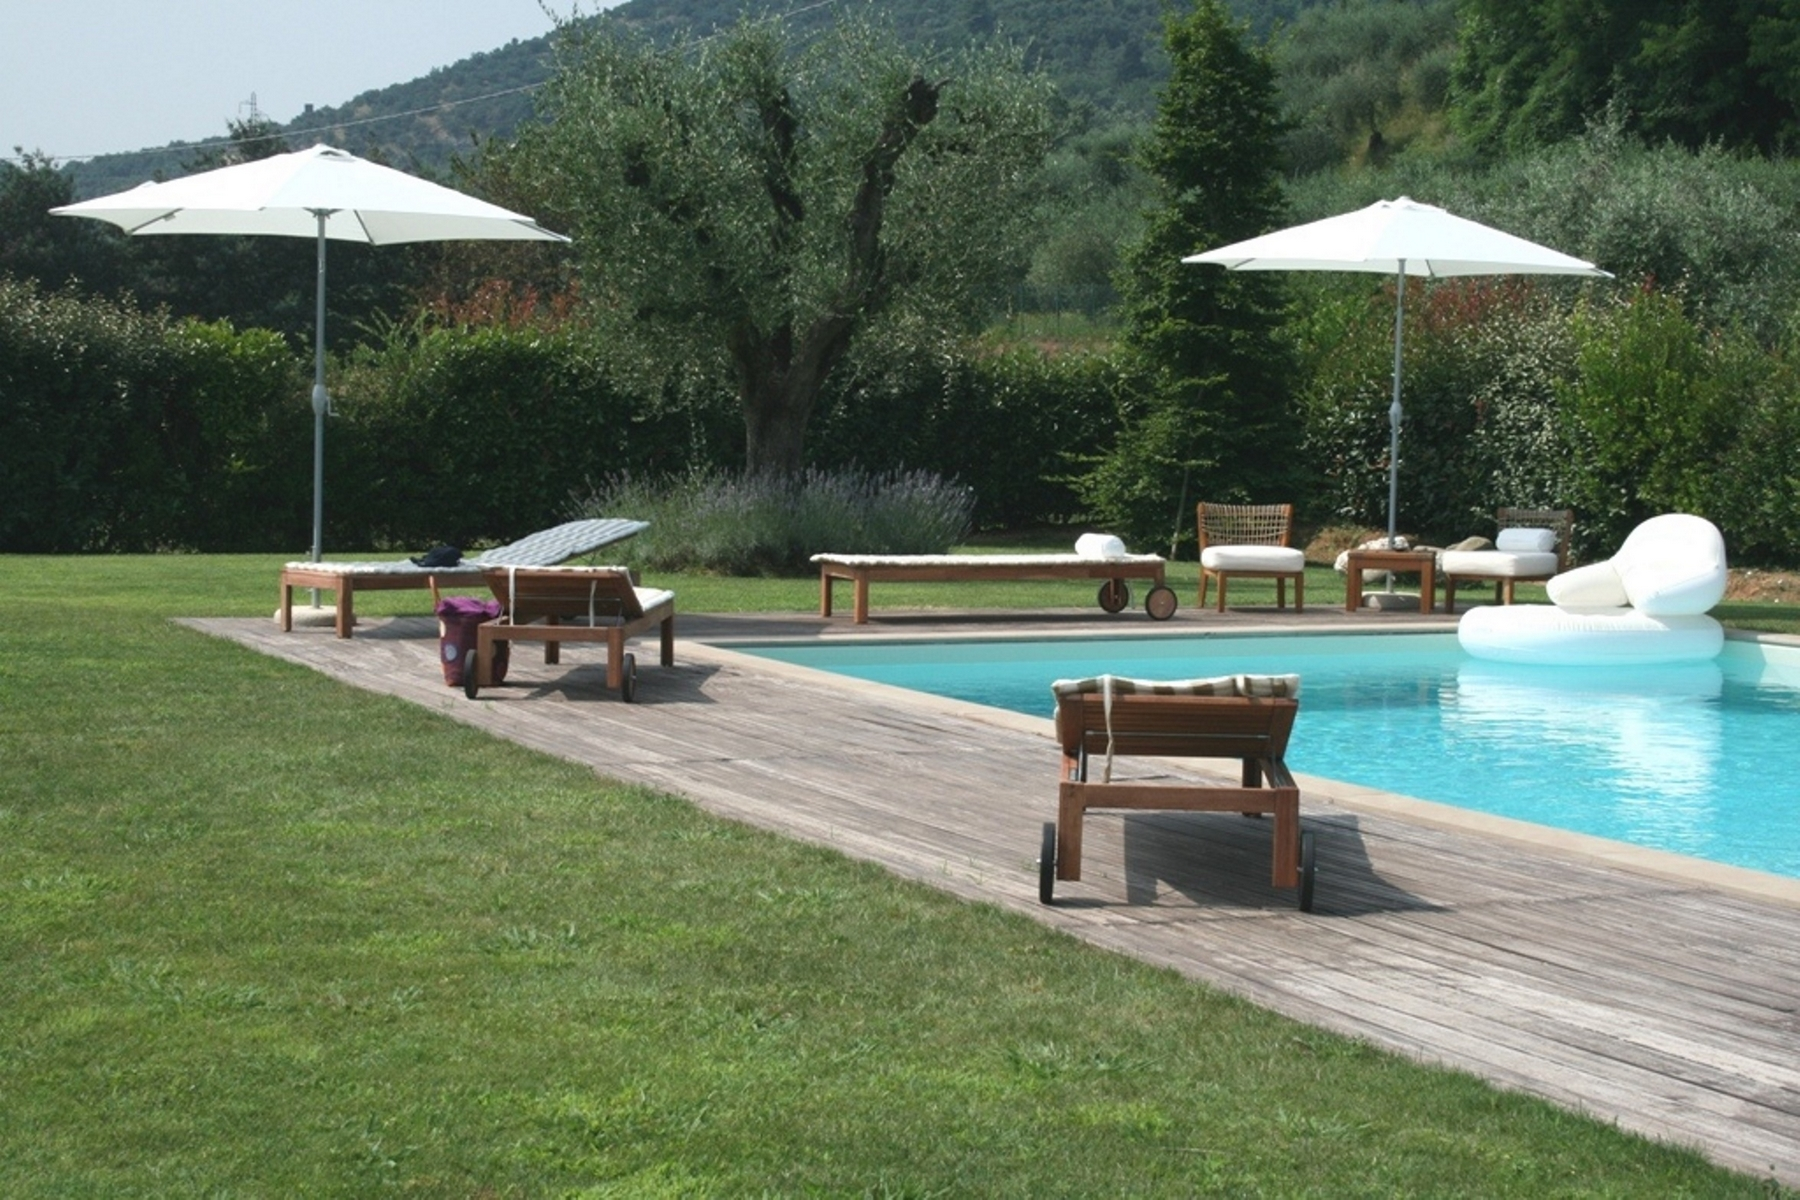 Single Family Home for Sale at Adorable farmhouse in the Lucca country-side Via della Fornace Other Lucca, Lucca 55100 Italy